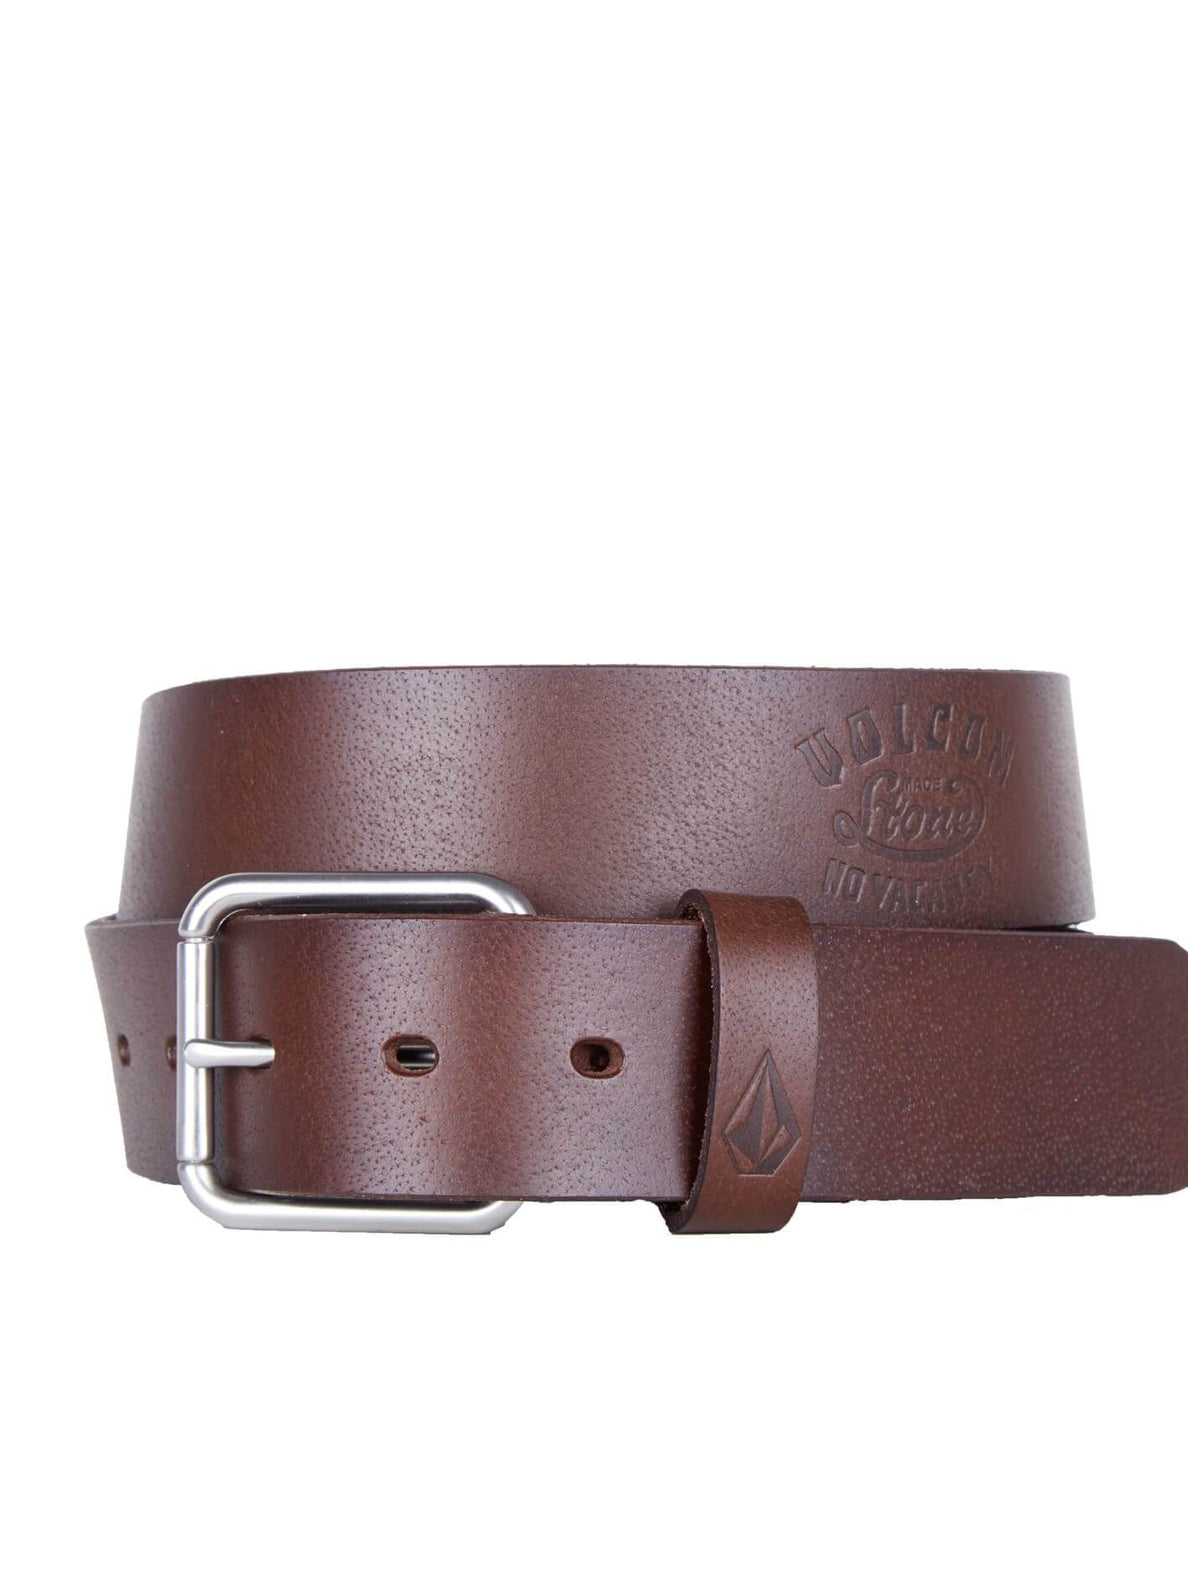 STONE ARMY BELT BROWN